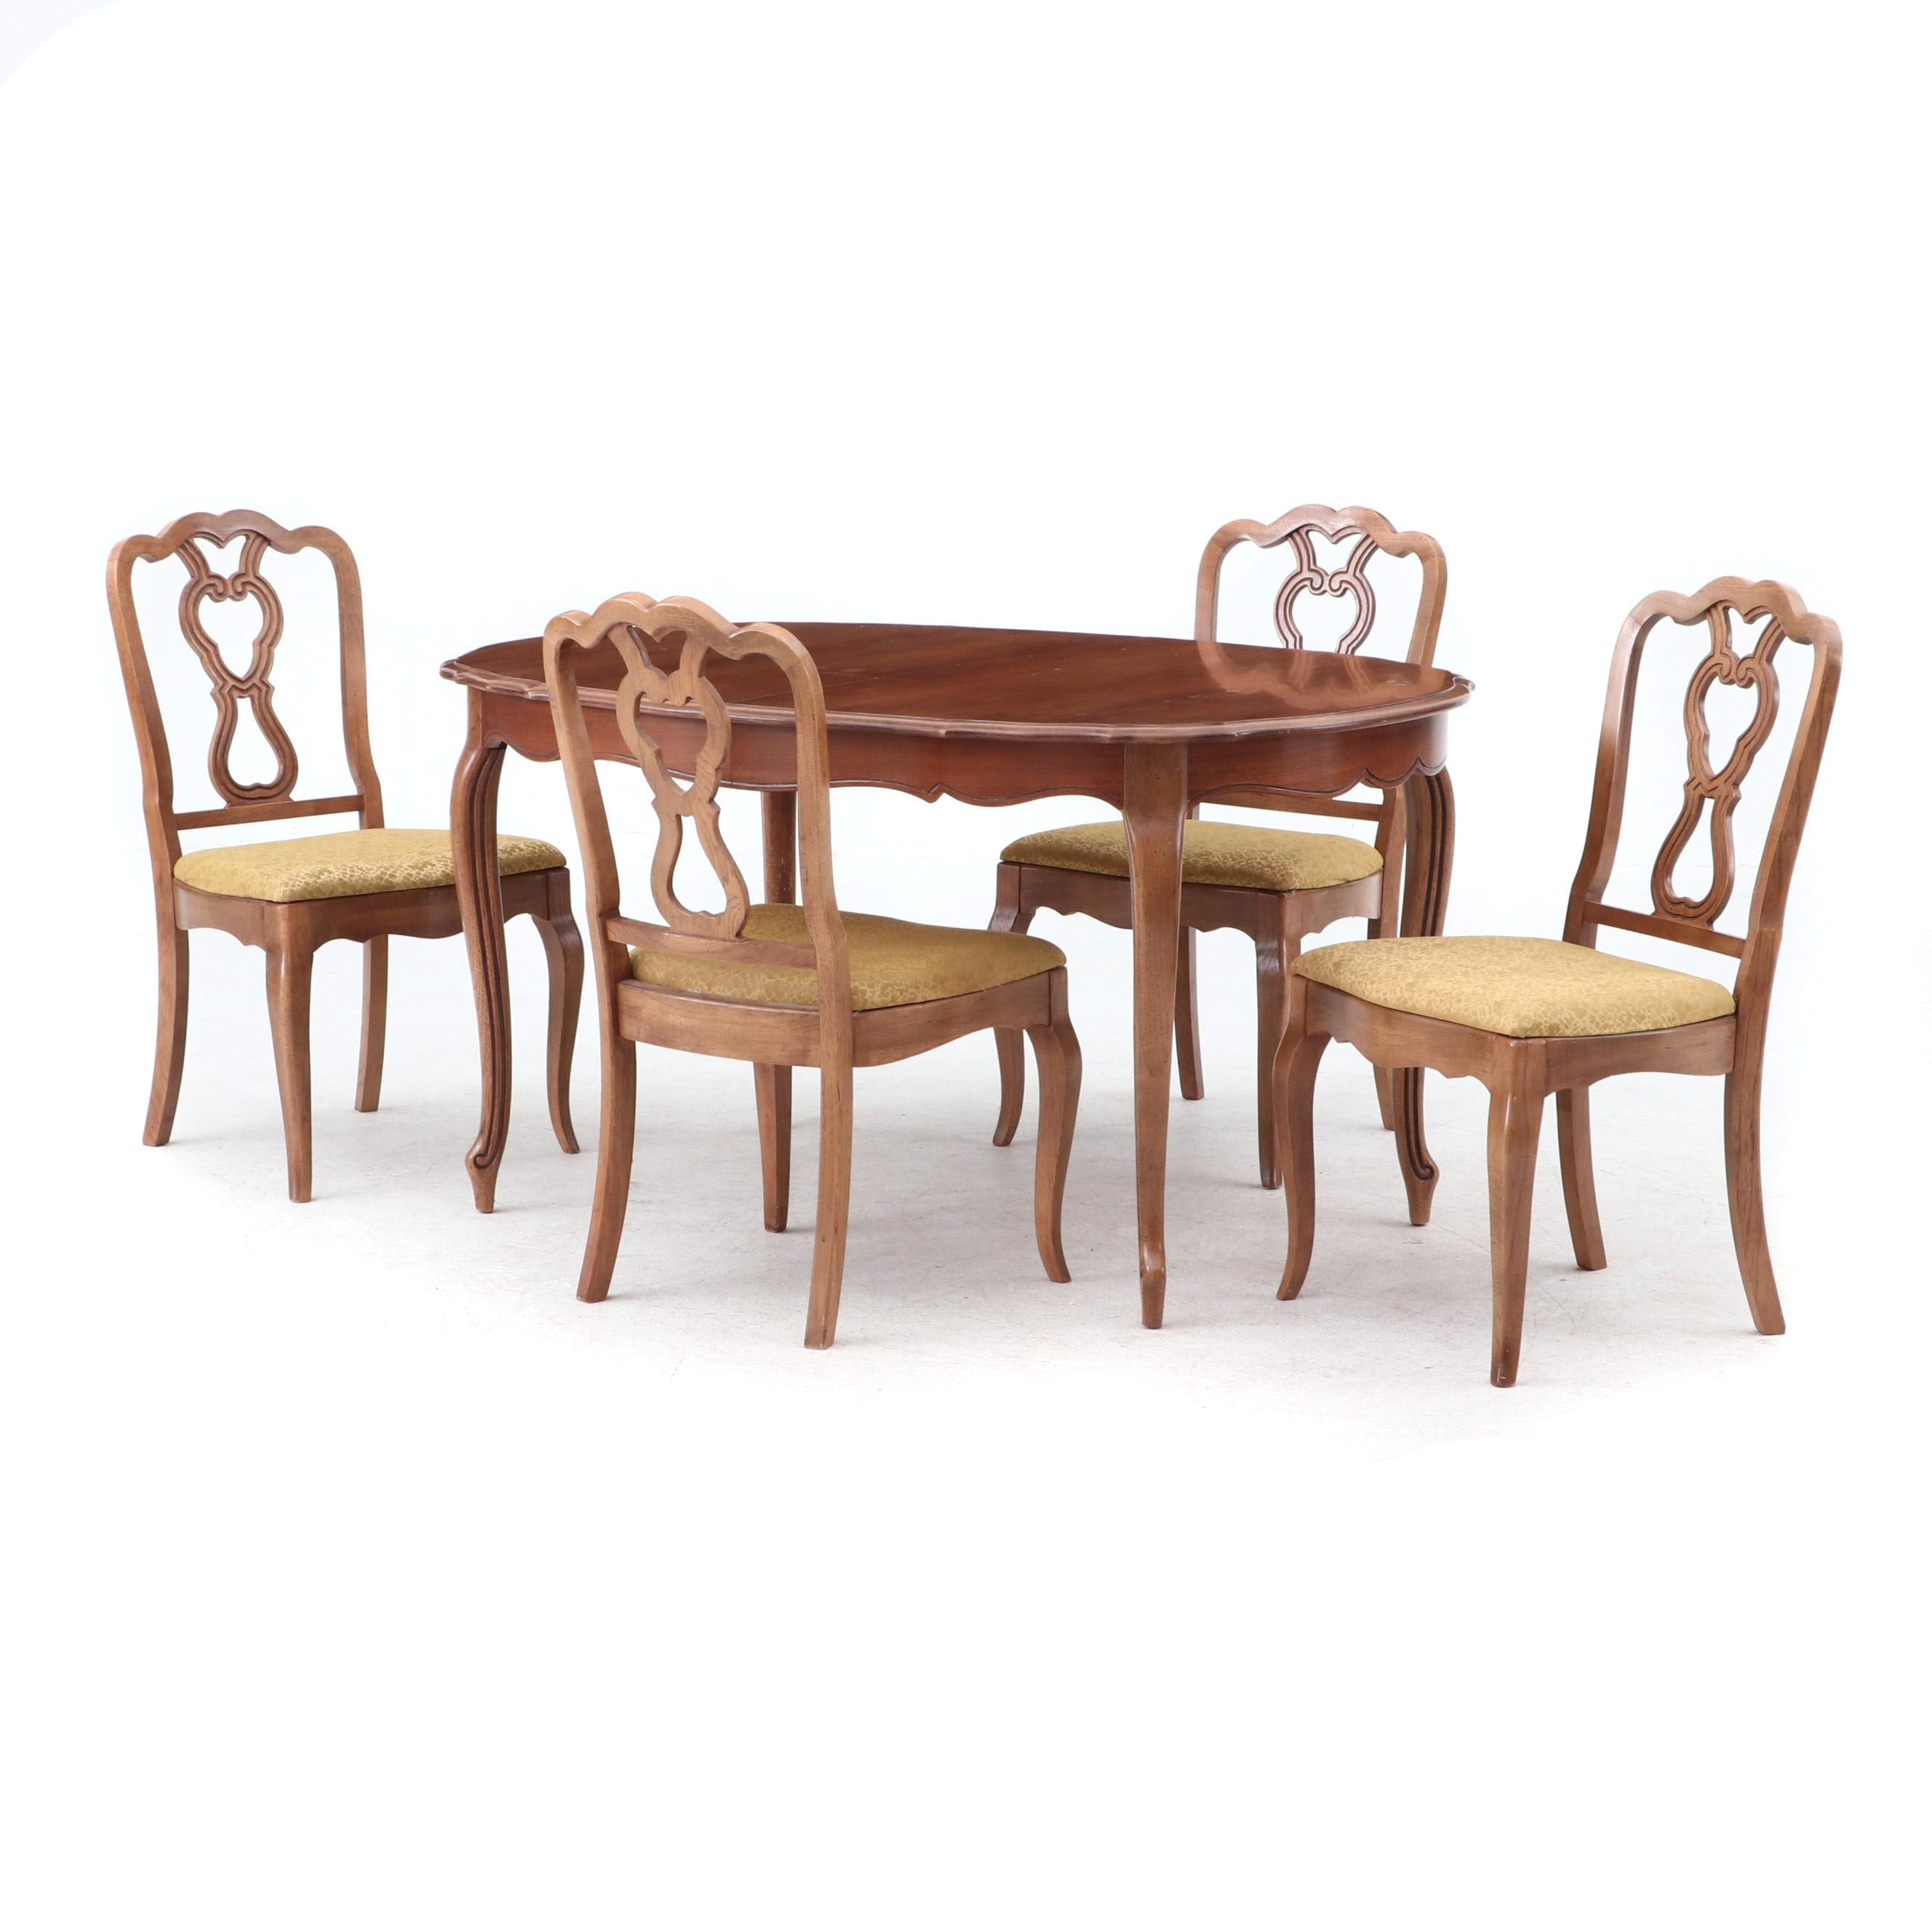 Thomasville French Provincial Style Dining Table and Chairs